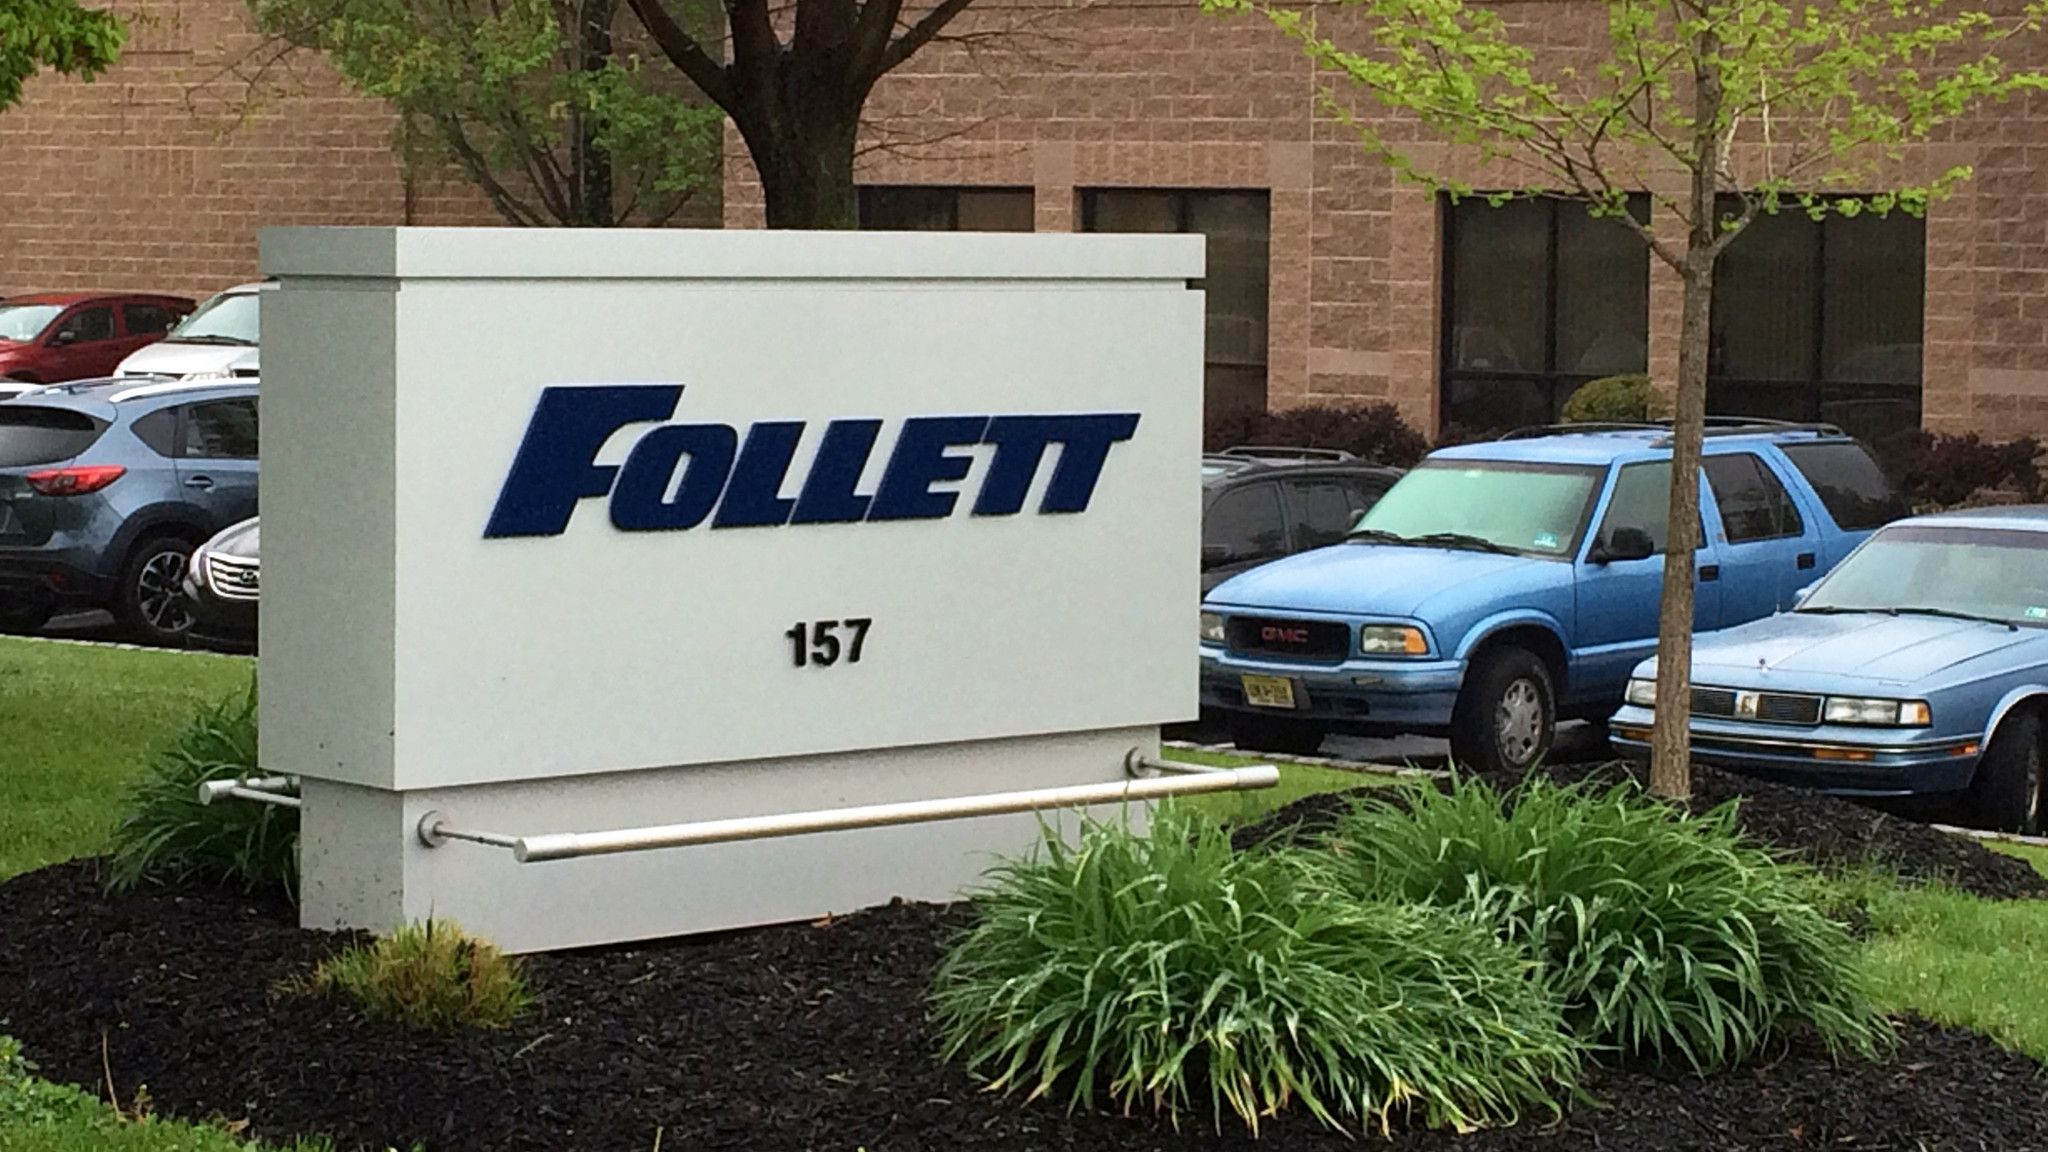 Follett corp workers authorize strike continued negotiations the morning call